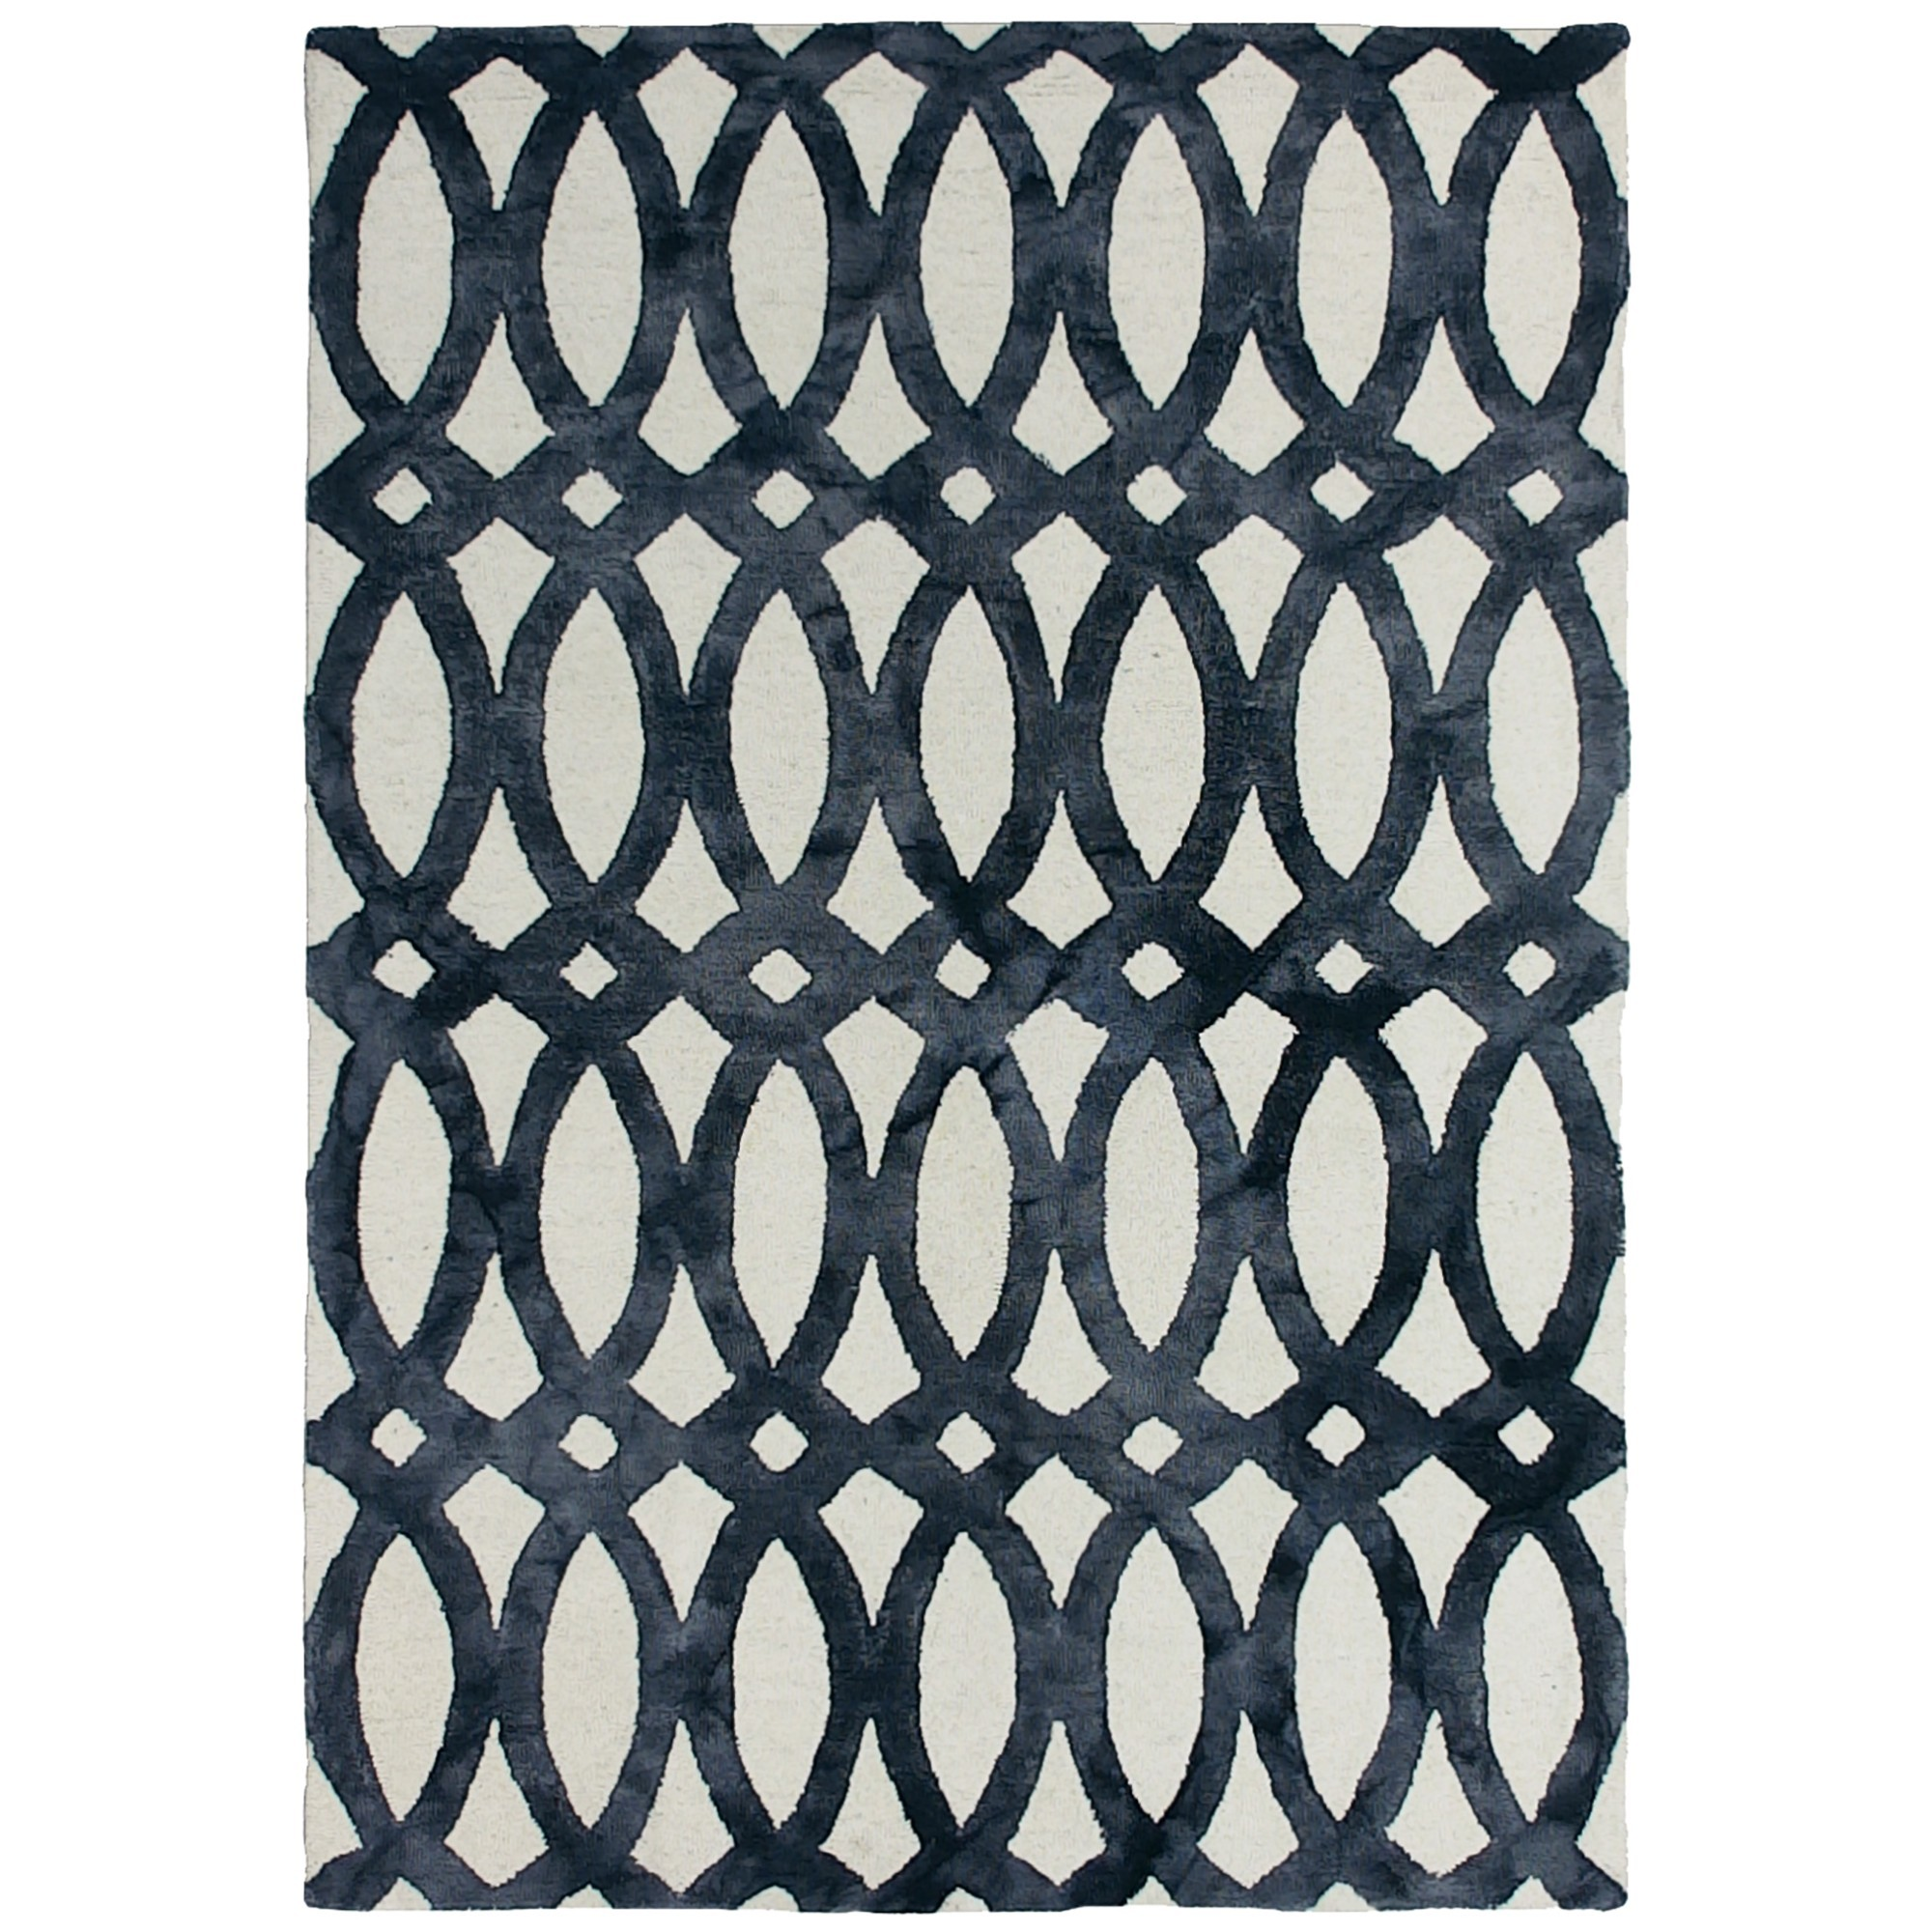 Dip Dye Hand Tufted Wool Rug, 160x230cm, Charcoal